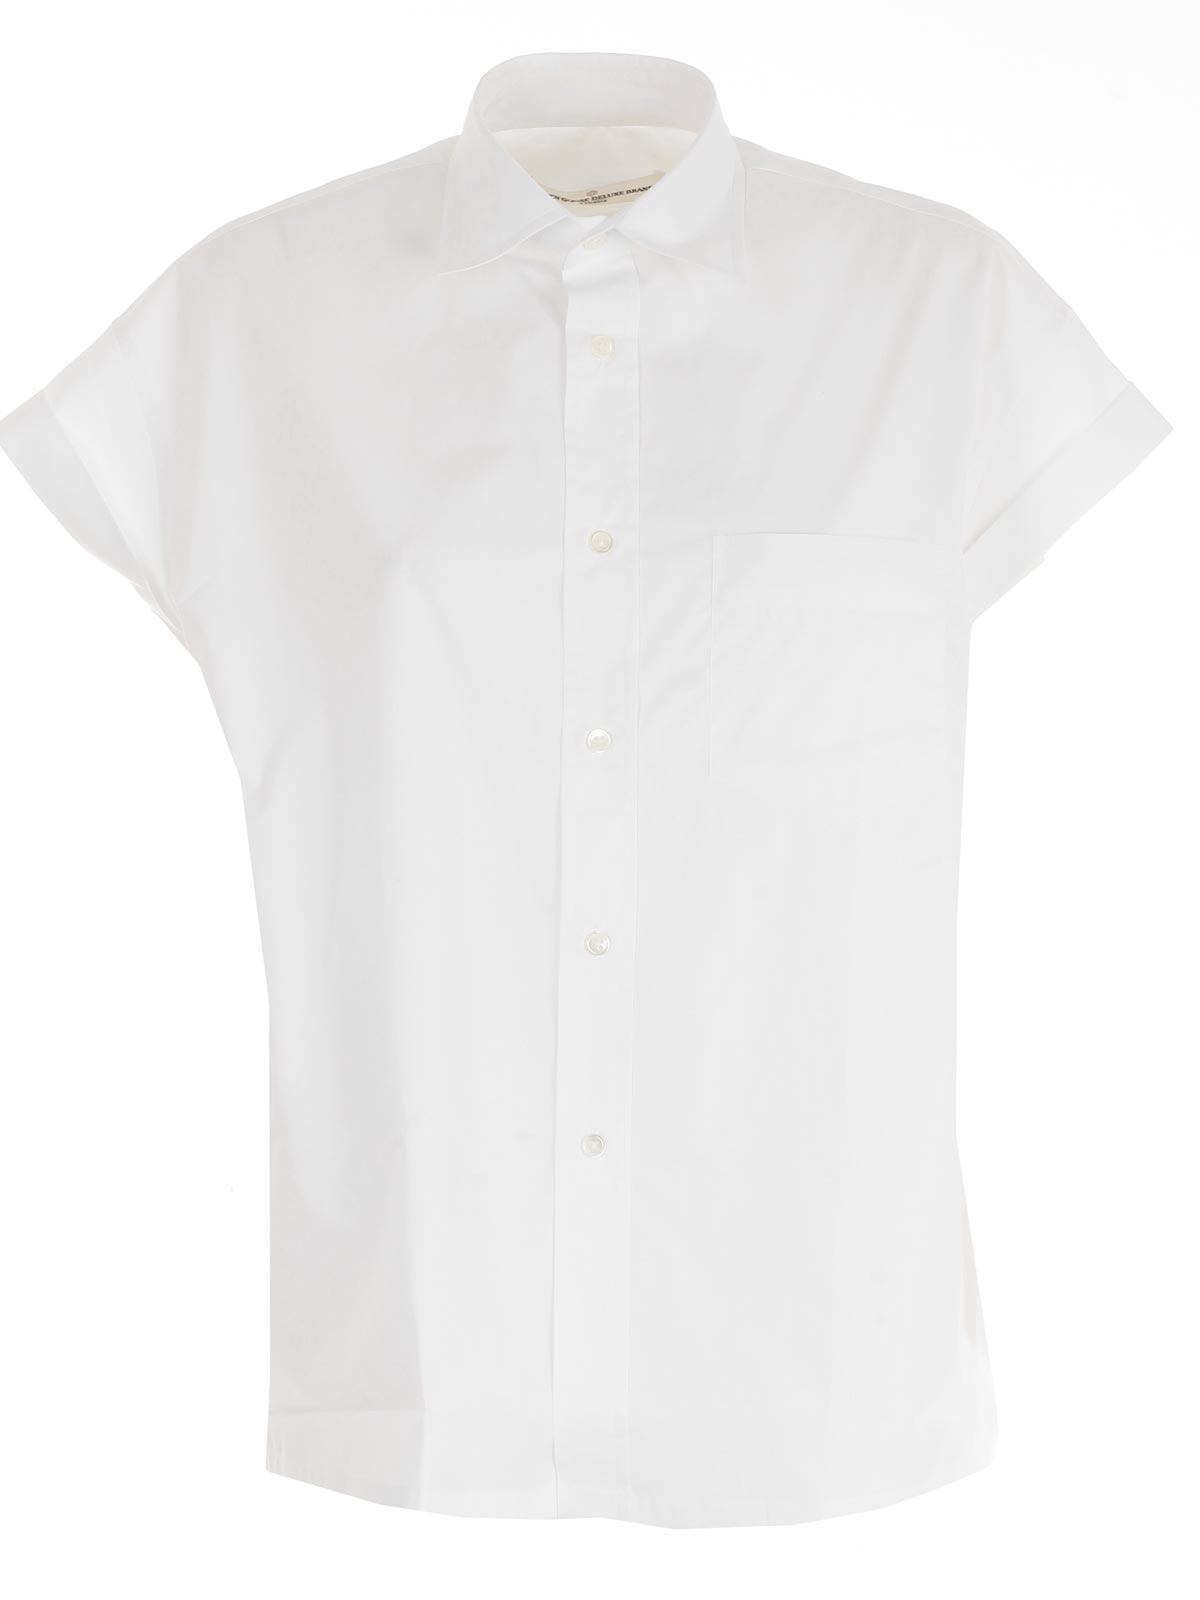 Picture of GOLDEN GOOSE DELUXE BRAND SHIRTS CAMICIA M/M